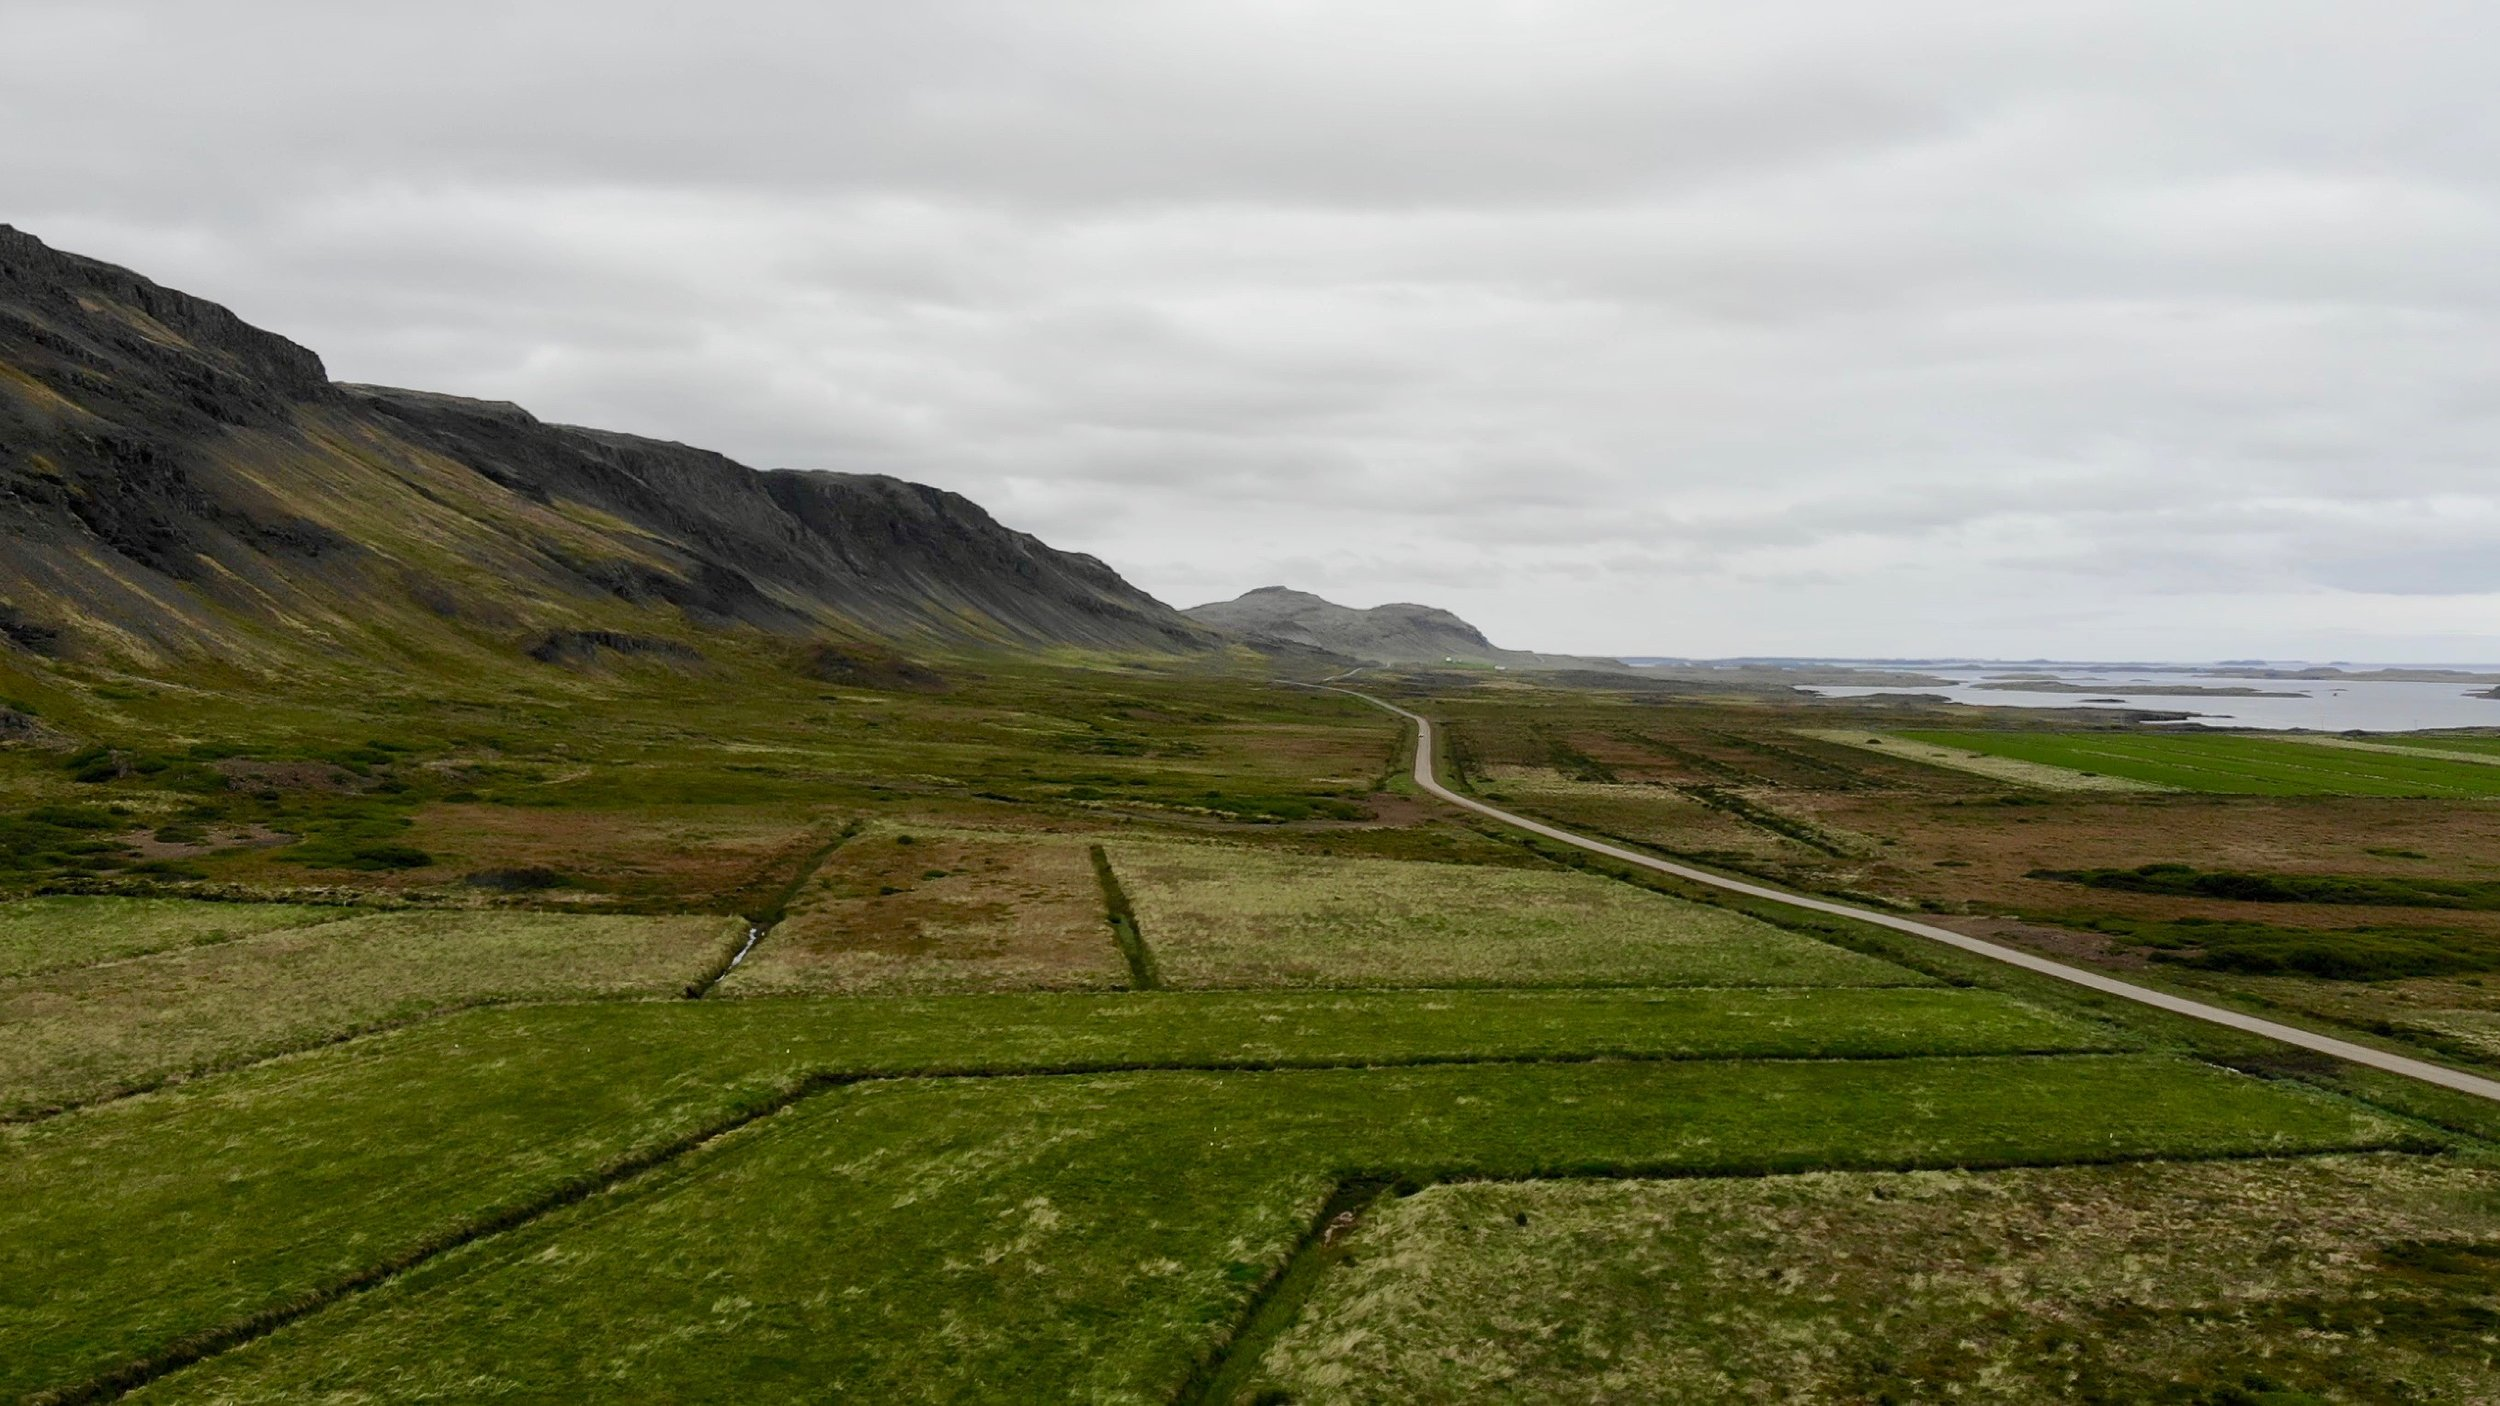 Drone photos of drive along North Iceland to Snæfellsnes Peninsula